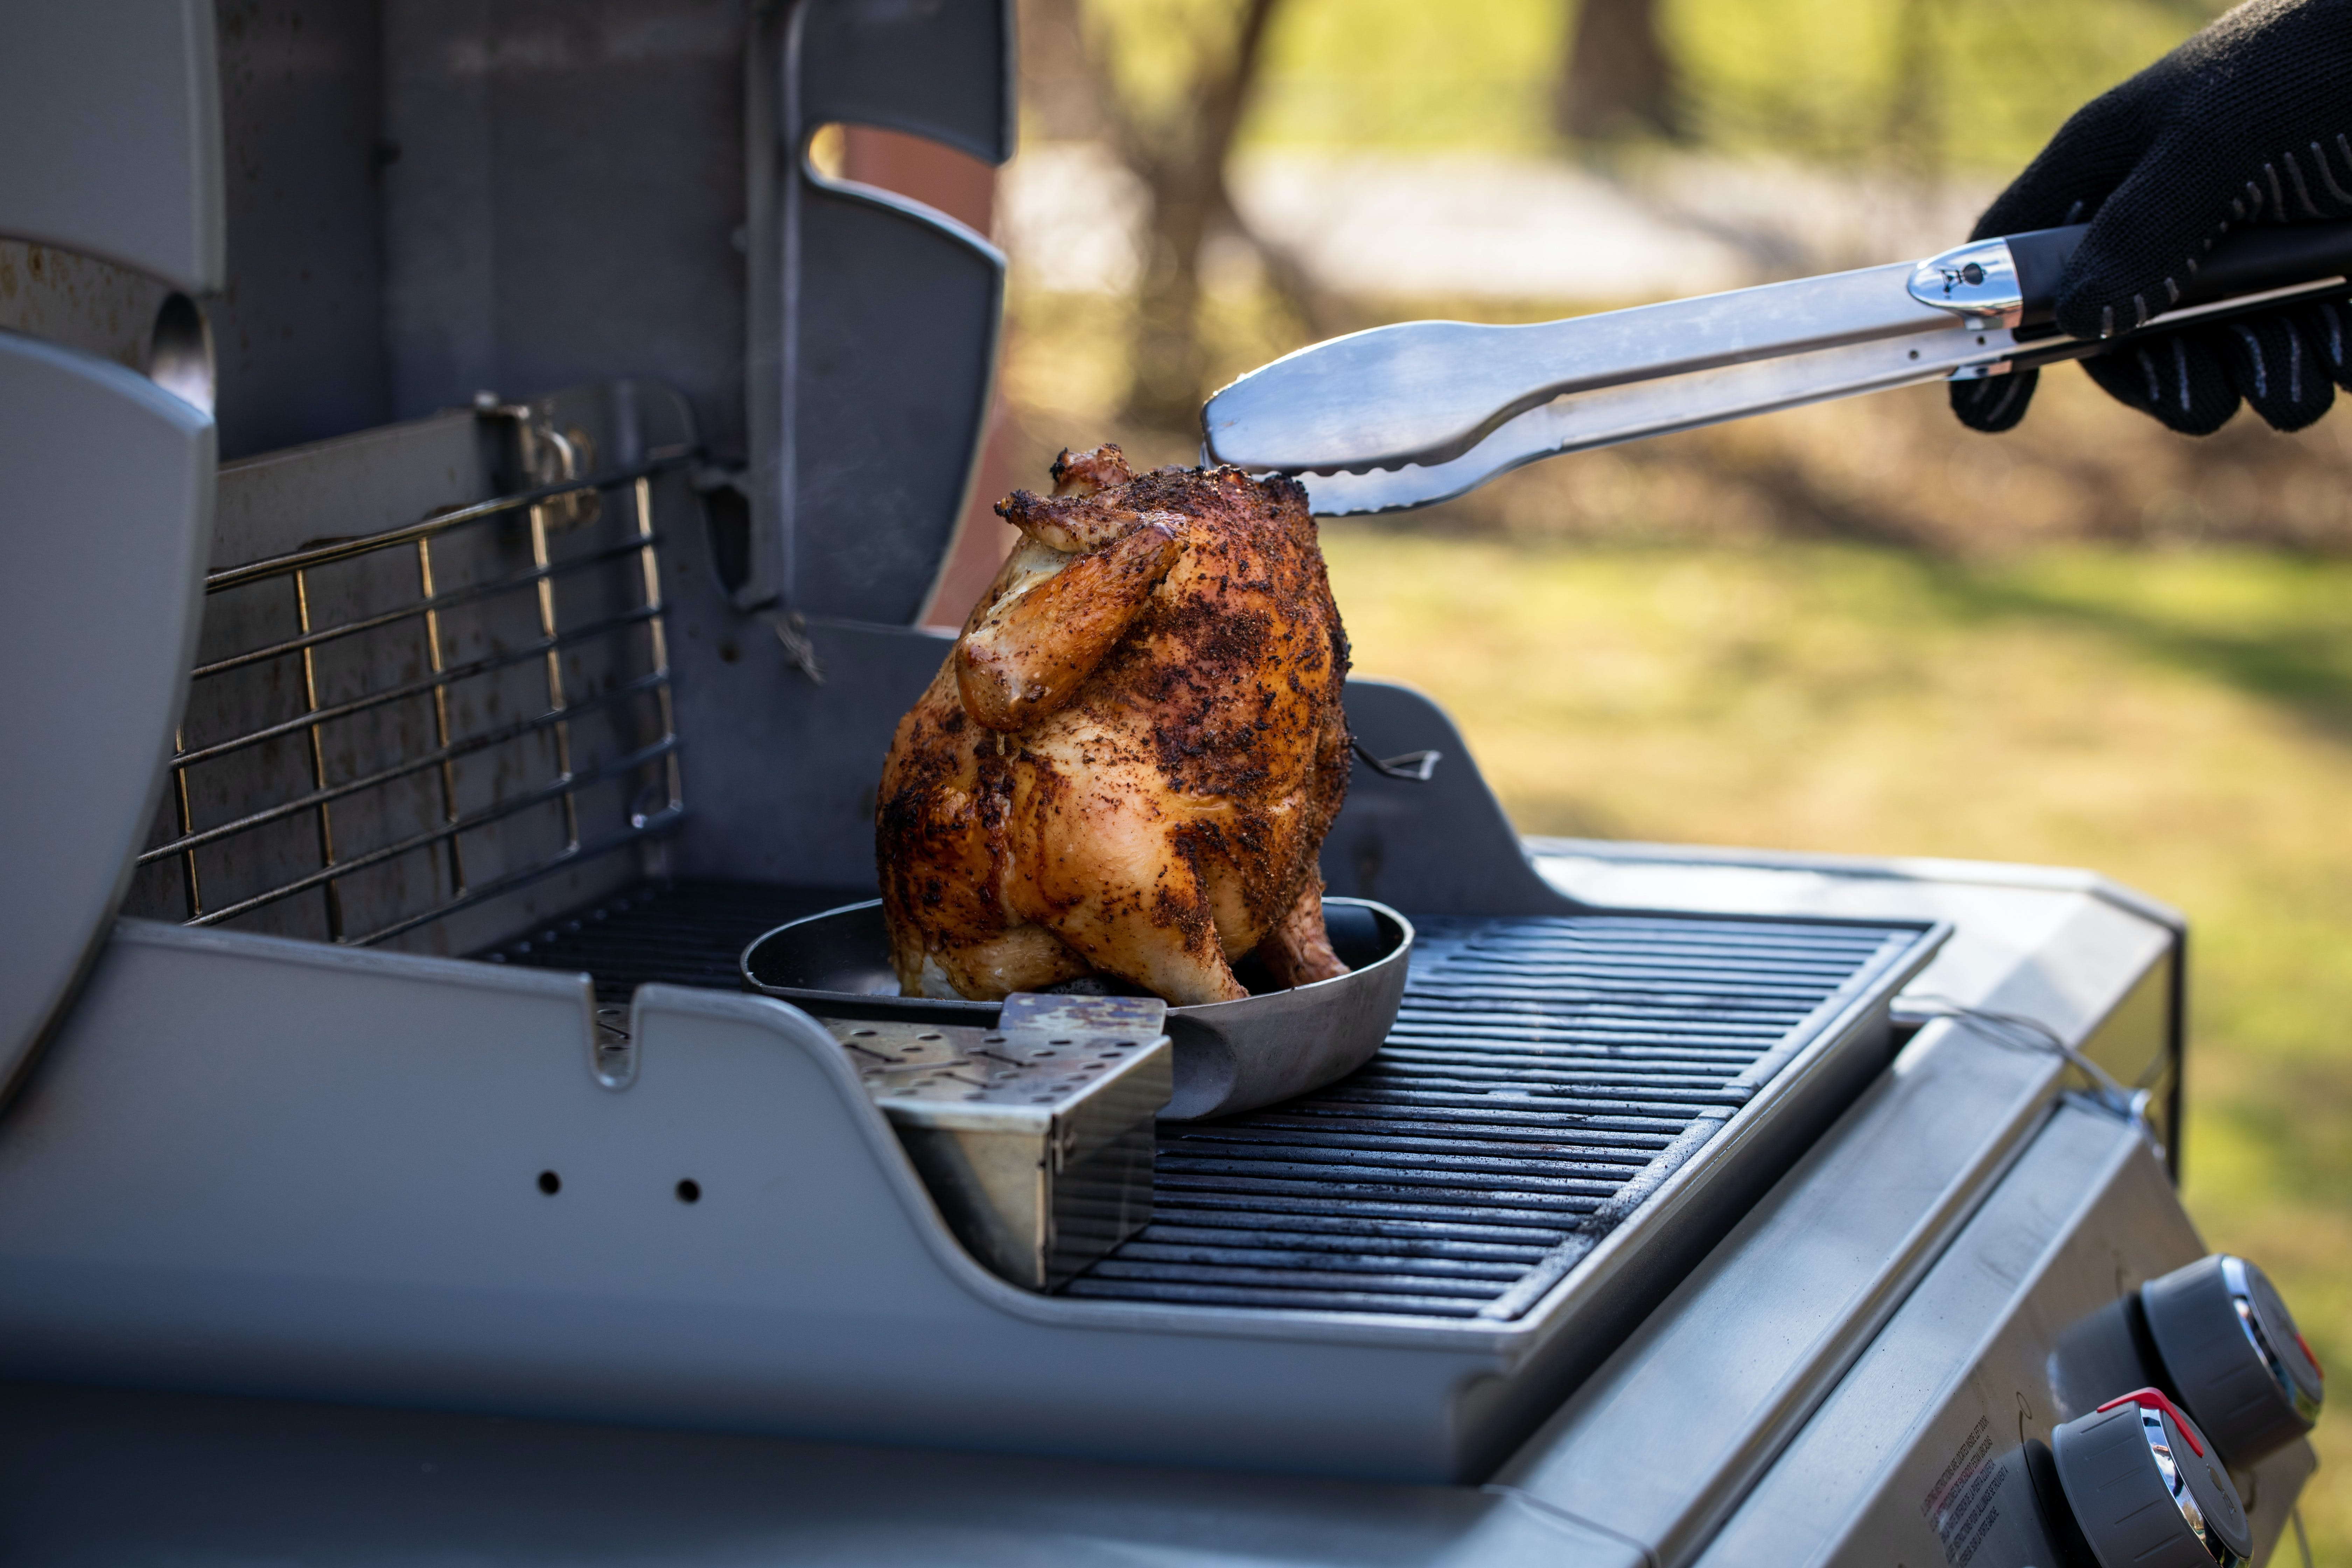 2019 01 Week 4 Smoking Lang Smoked Beer Can Chicken Photo Tongs Chicken On Poultry Roaster I Grill3 On Genesis Ii 6